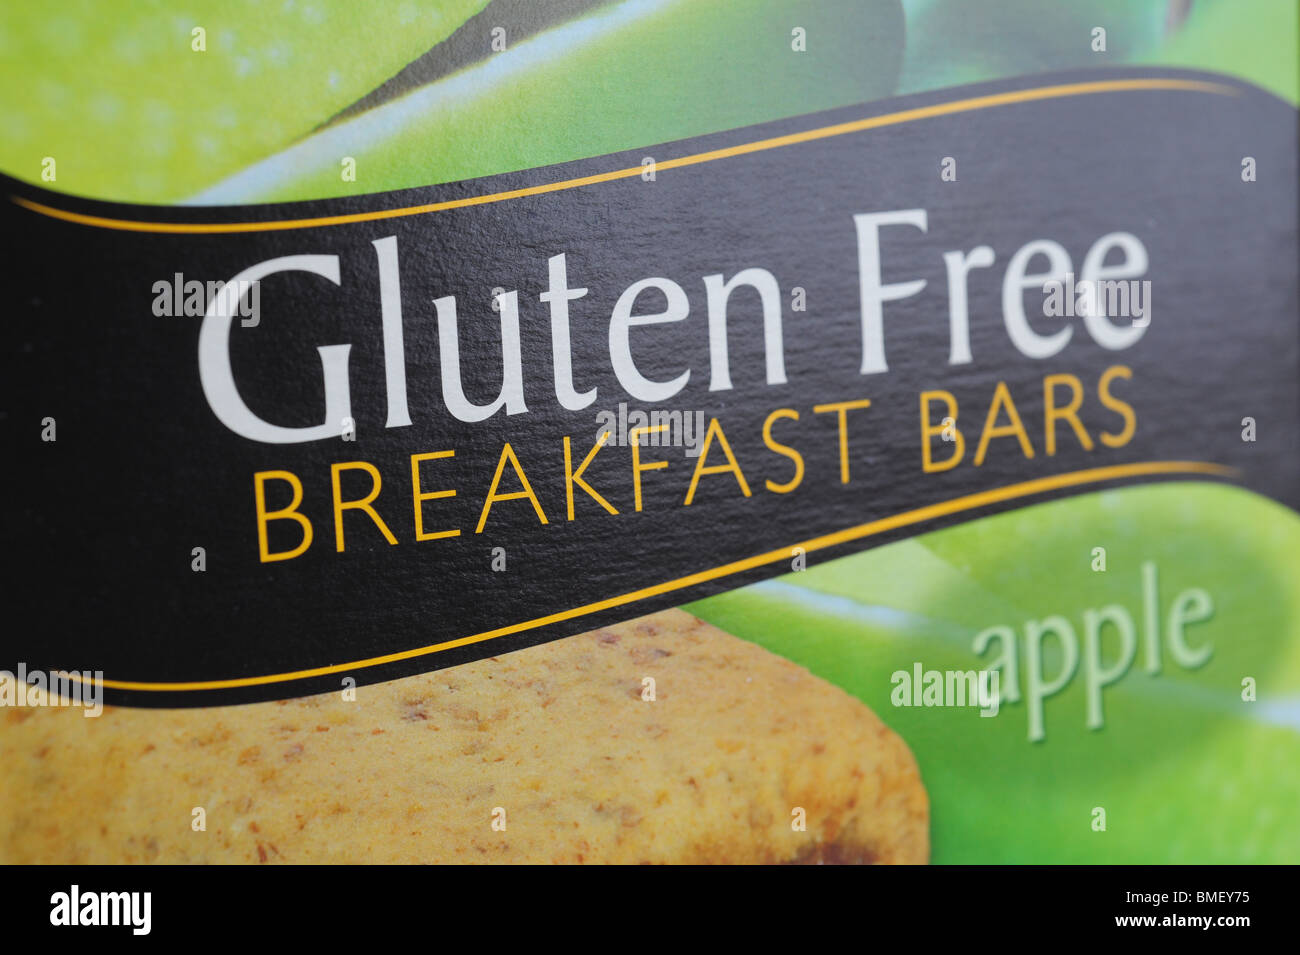 Gluten free food products breakfast bars - Stock Image